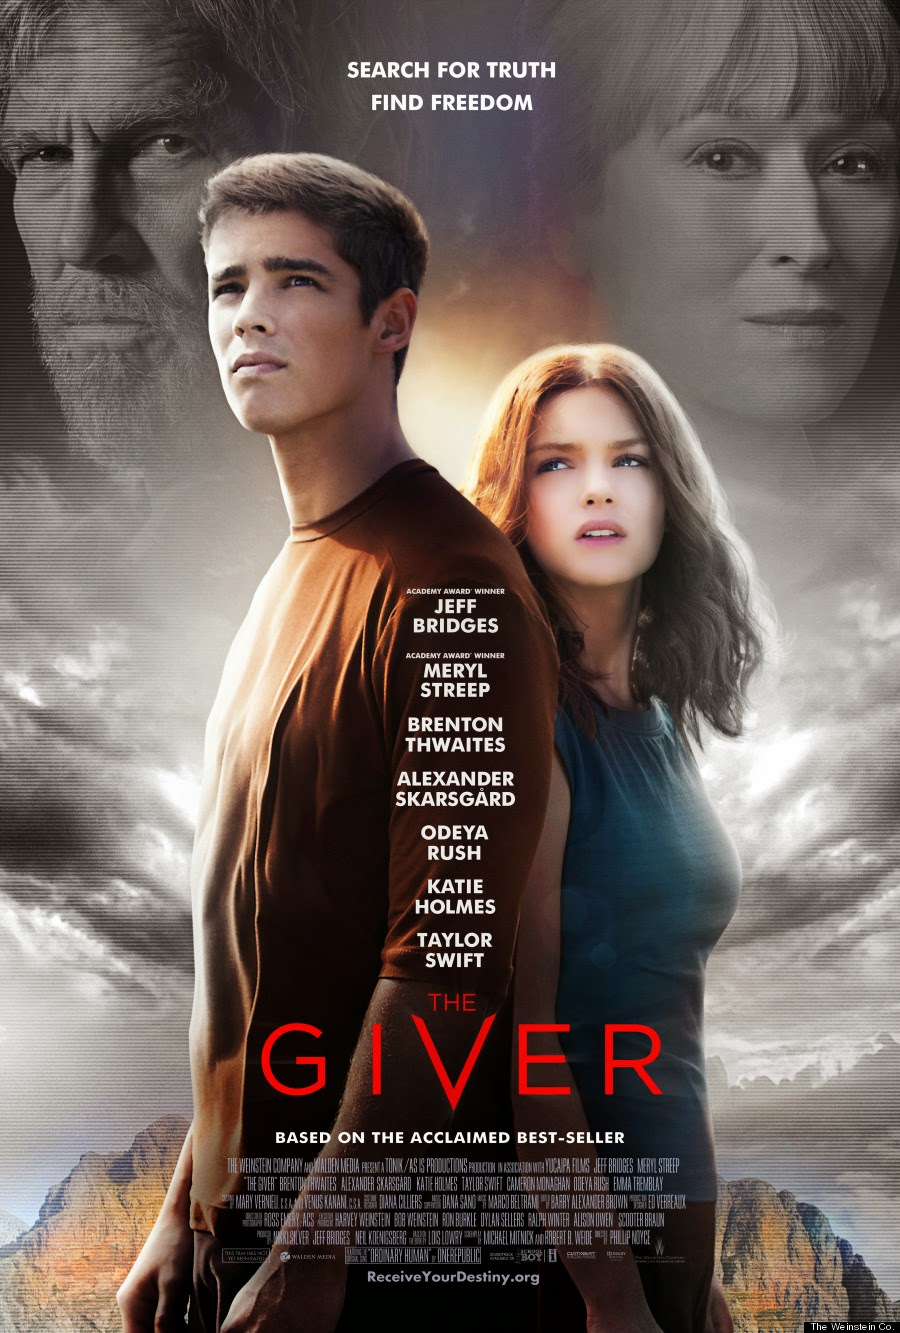 The Giver — 3.5 out of 5 stars